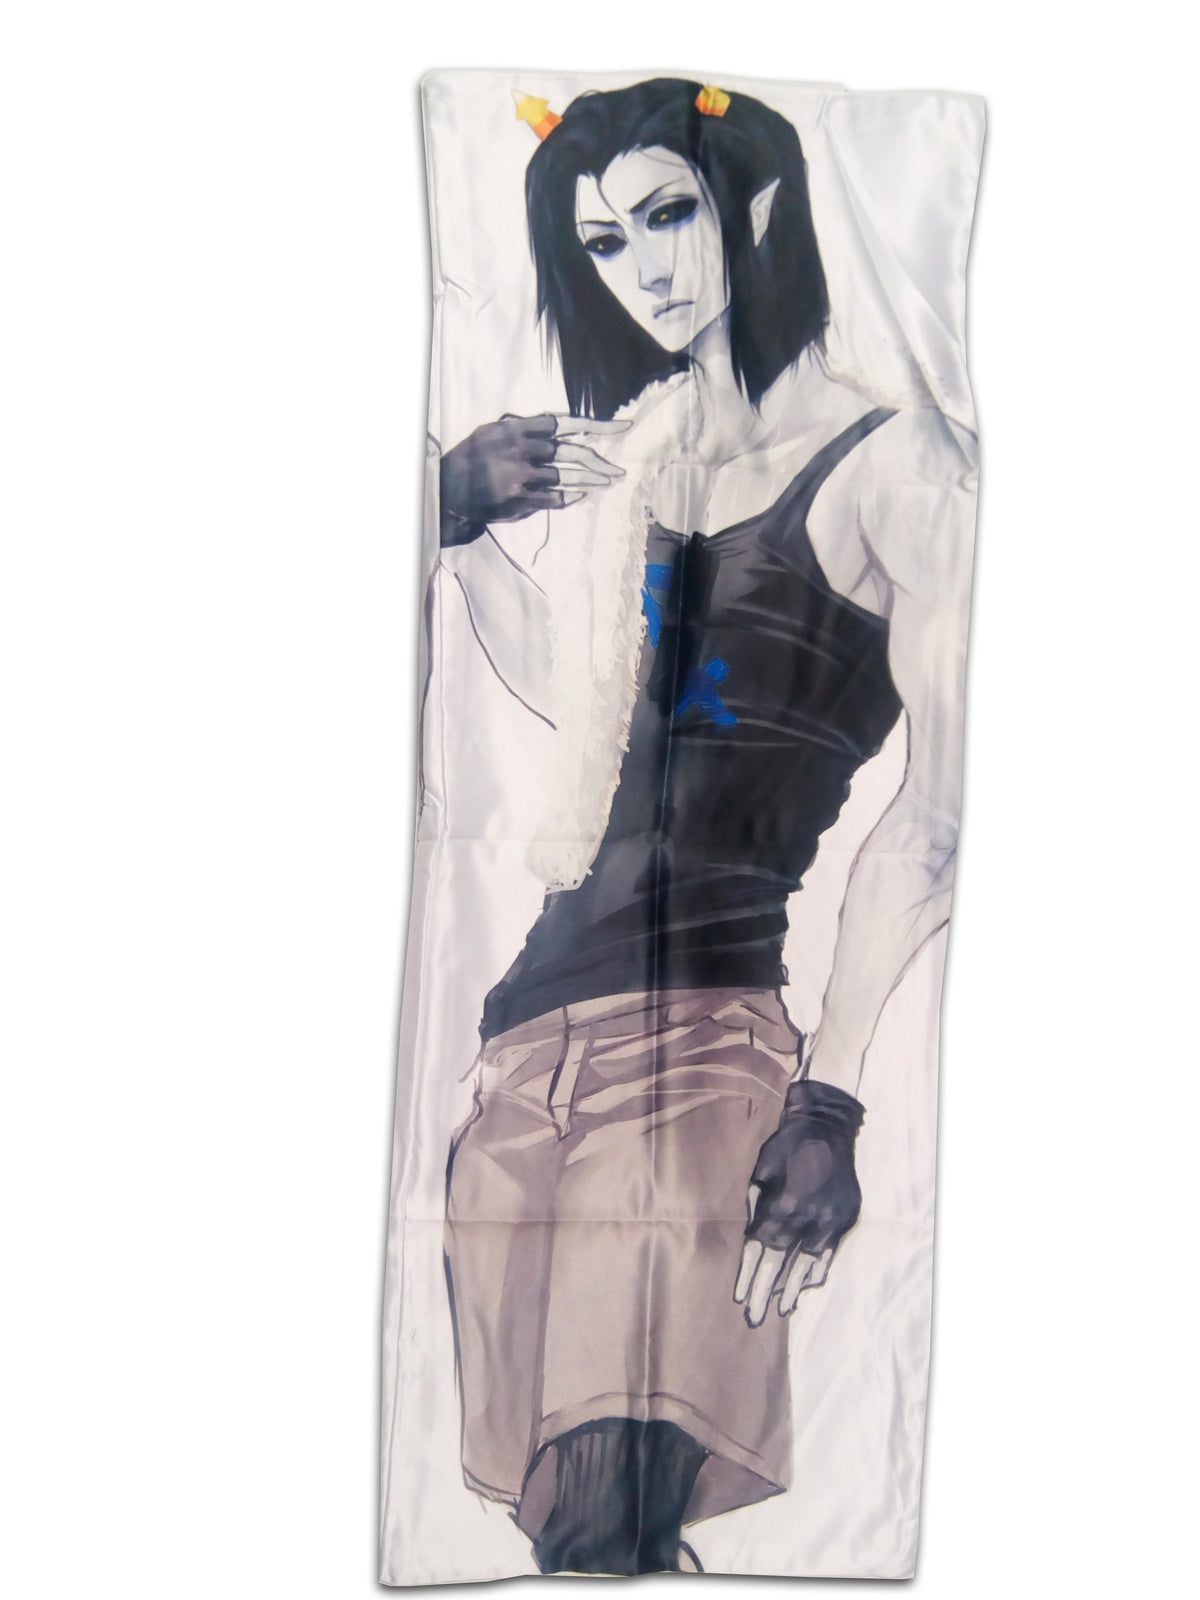 Homestuck Equius Body Pillow // Dakimakura // Anime Body Pillow // Valentines Day Gift